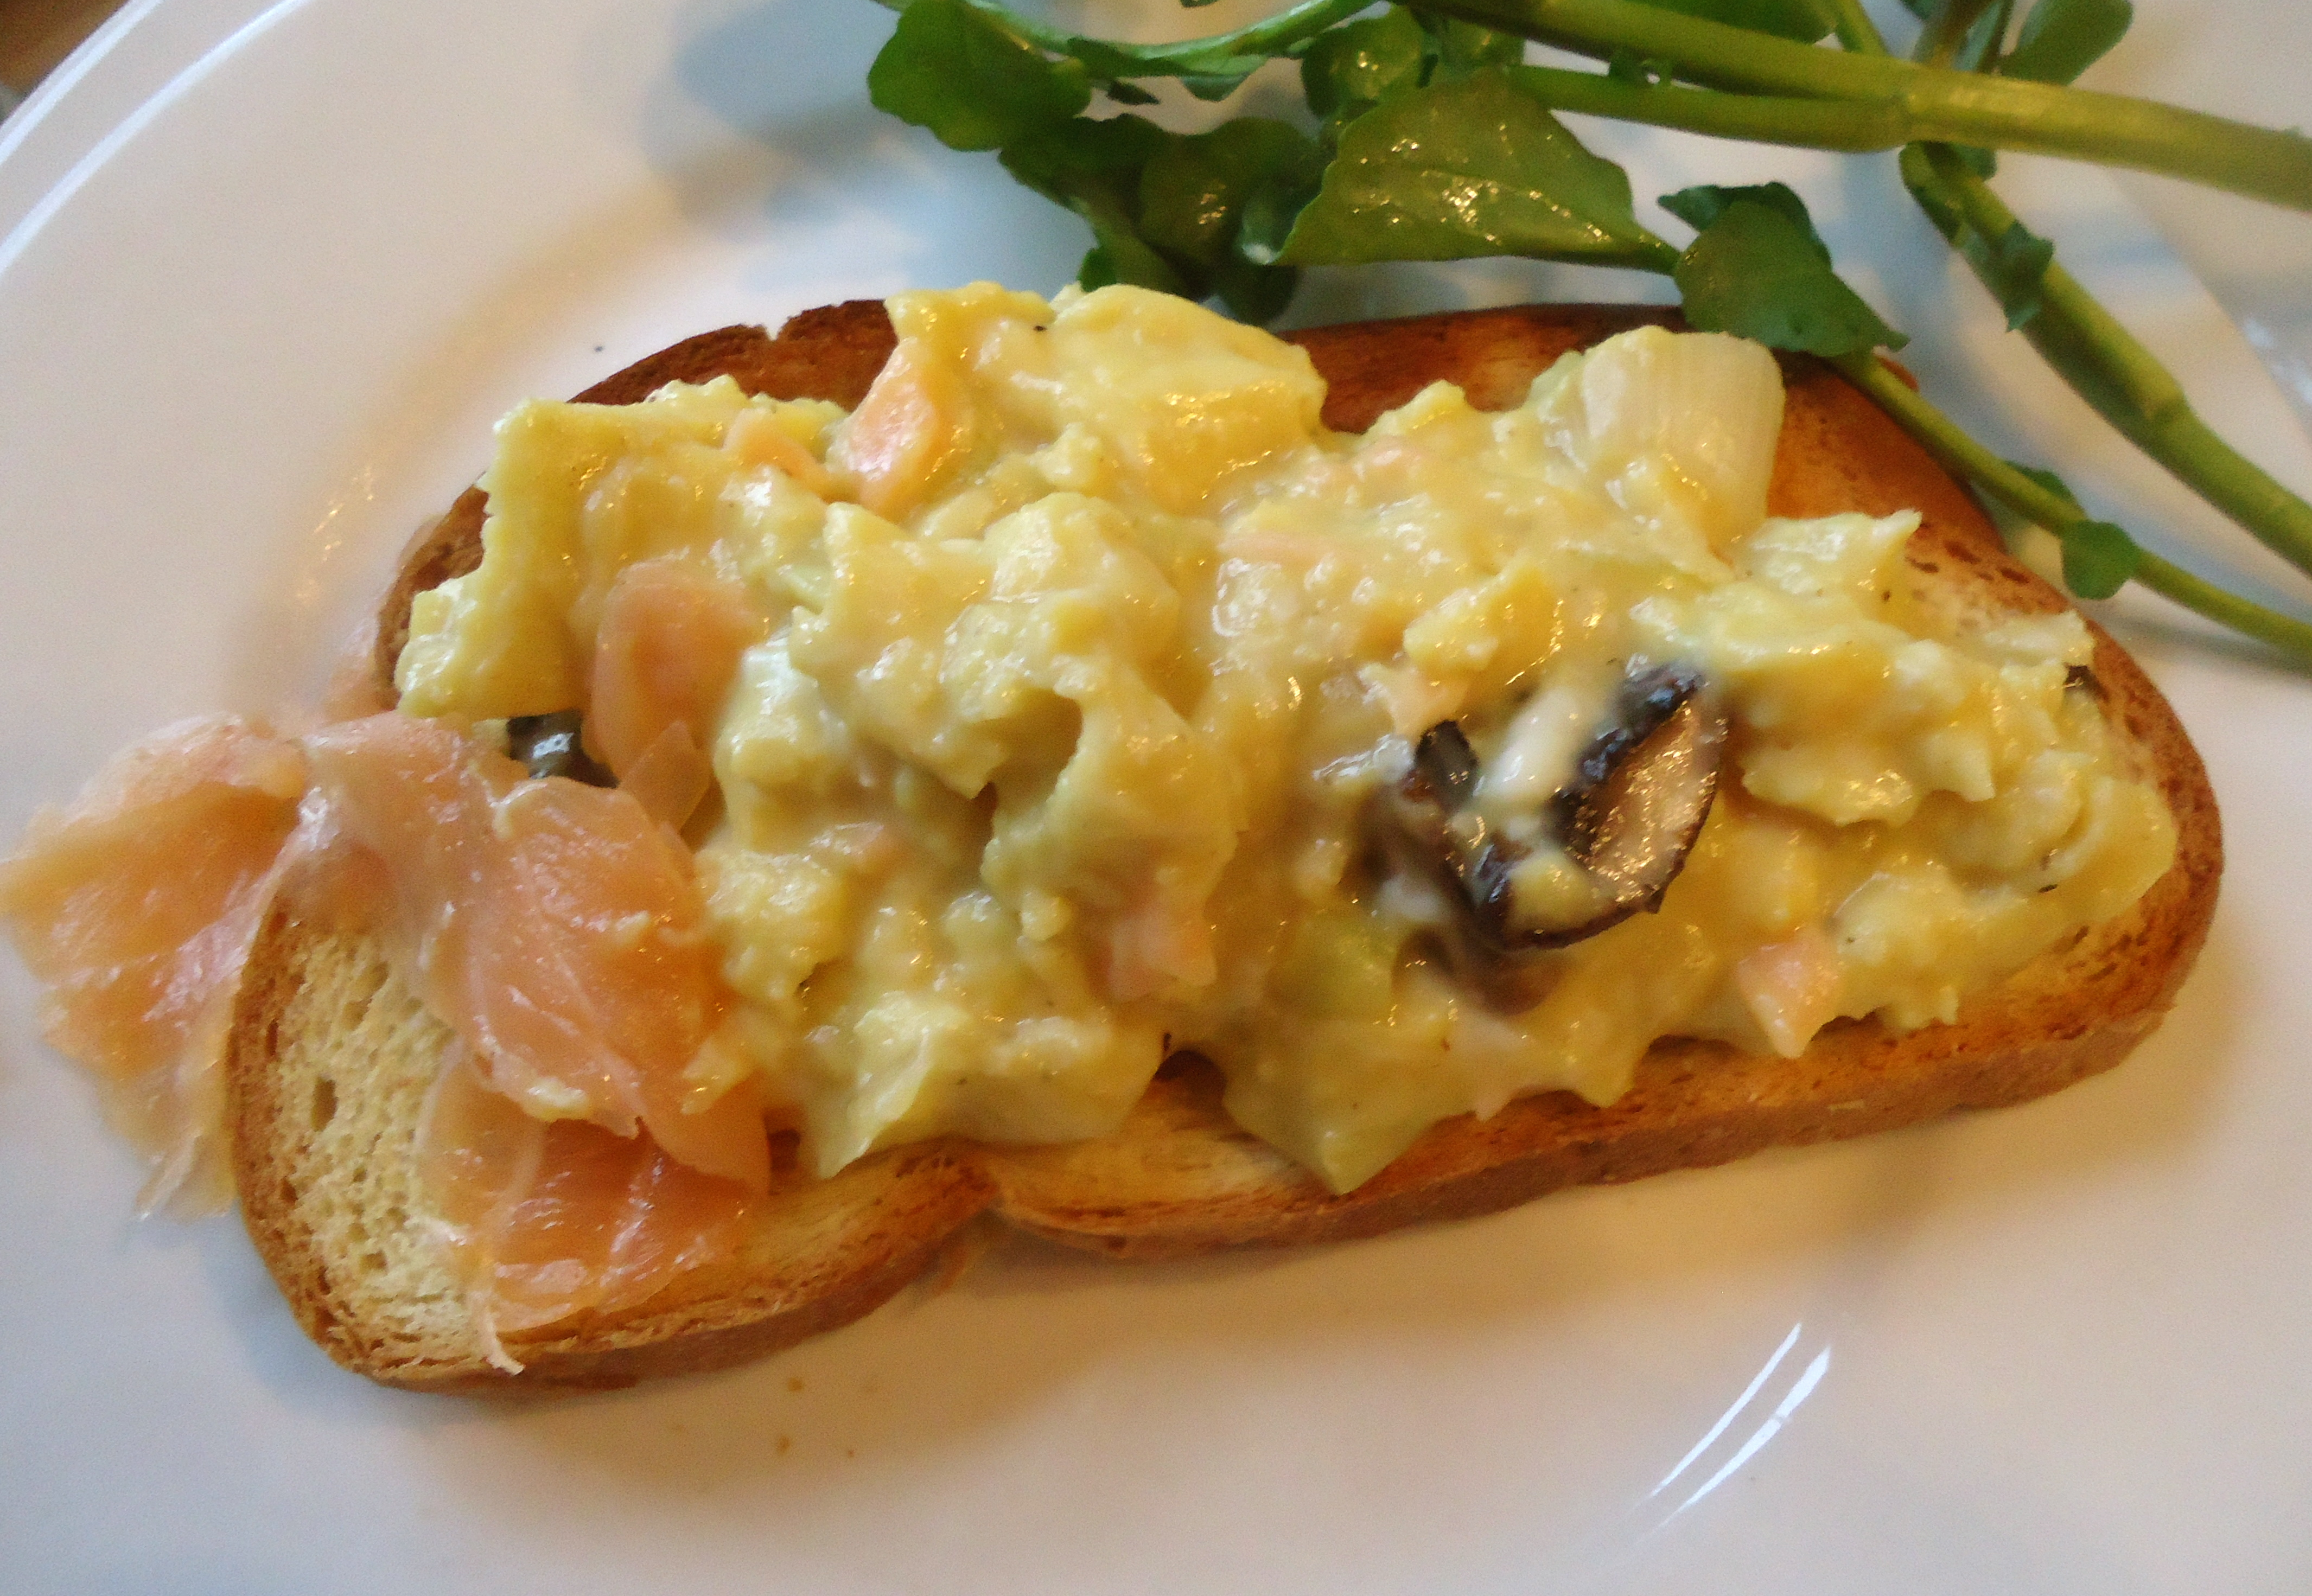 Breakfast With Creamy Scrambled Eggs Mushrooms And Smoked Salmon On